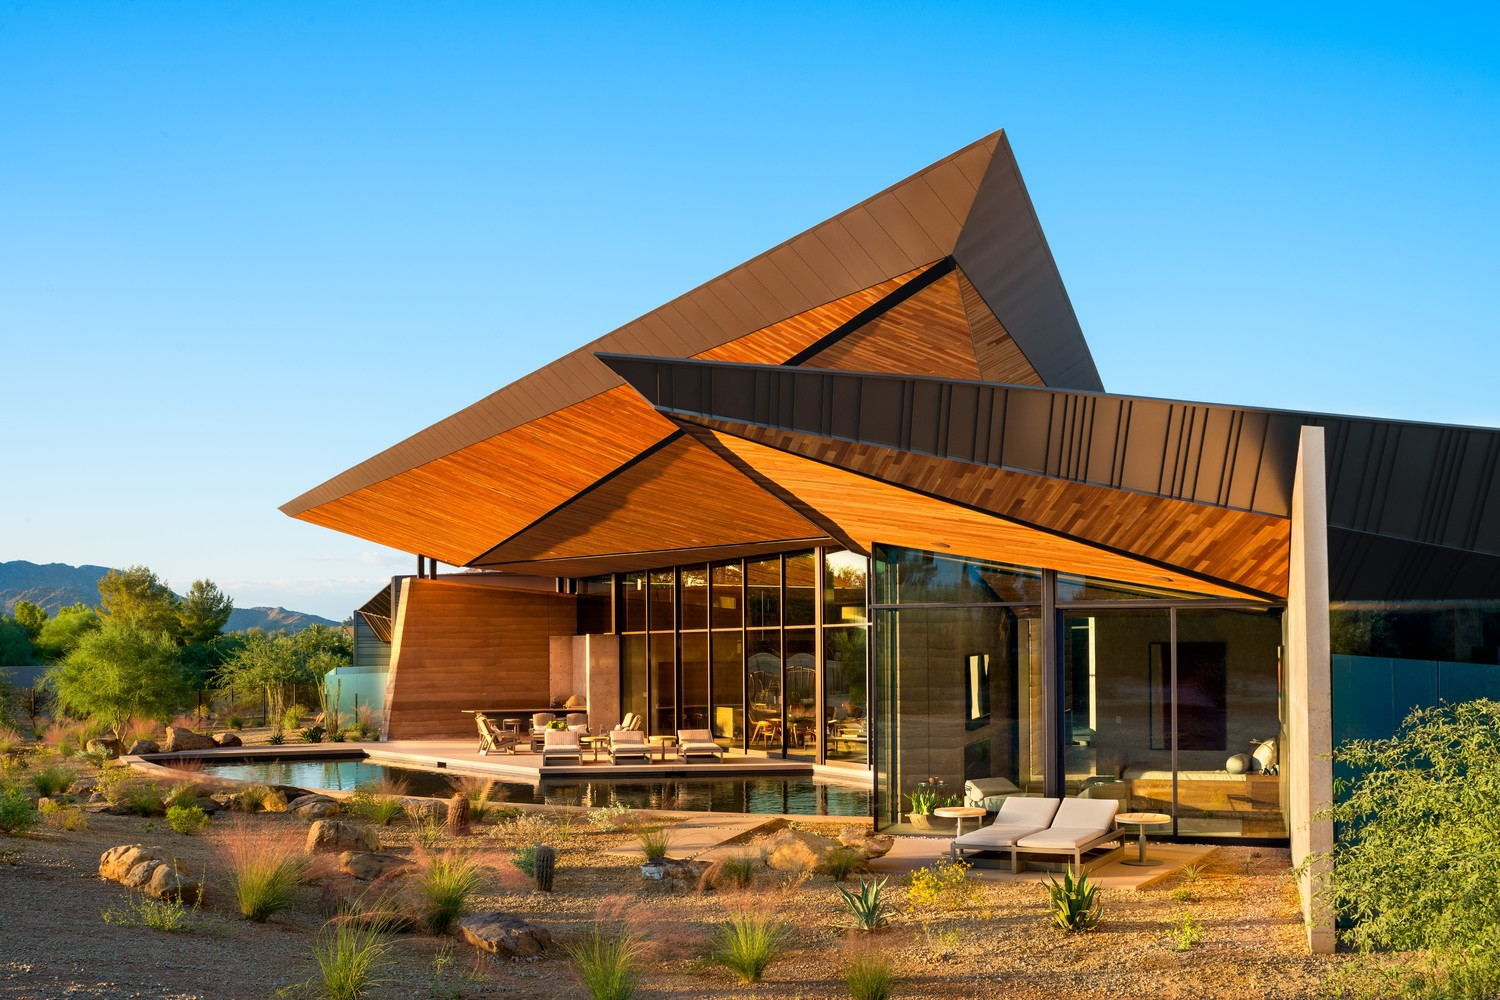 A bold, angular canopy roof for a desert home in Arizona, USA.